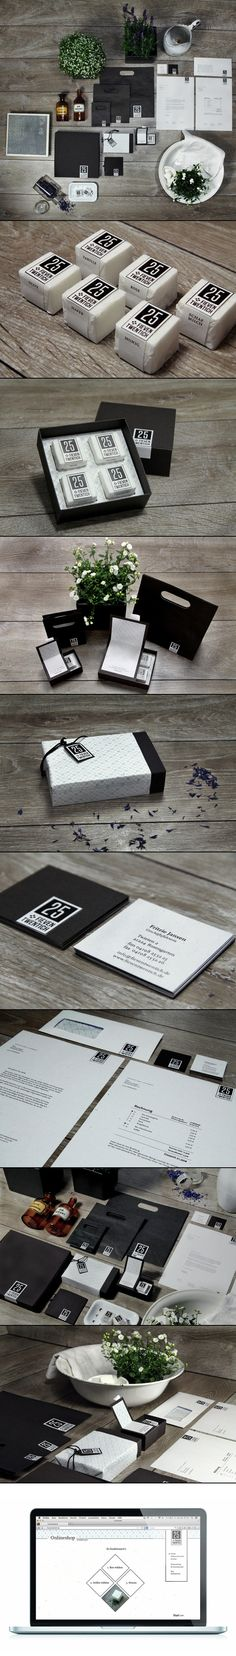 Fieventwentich #identity #packaging #branding PD